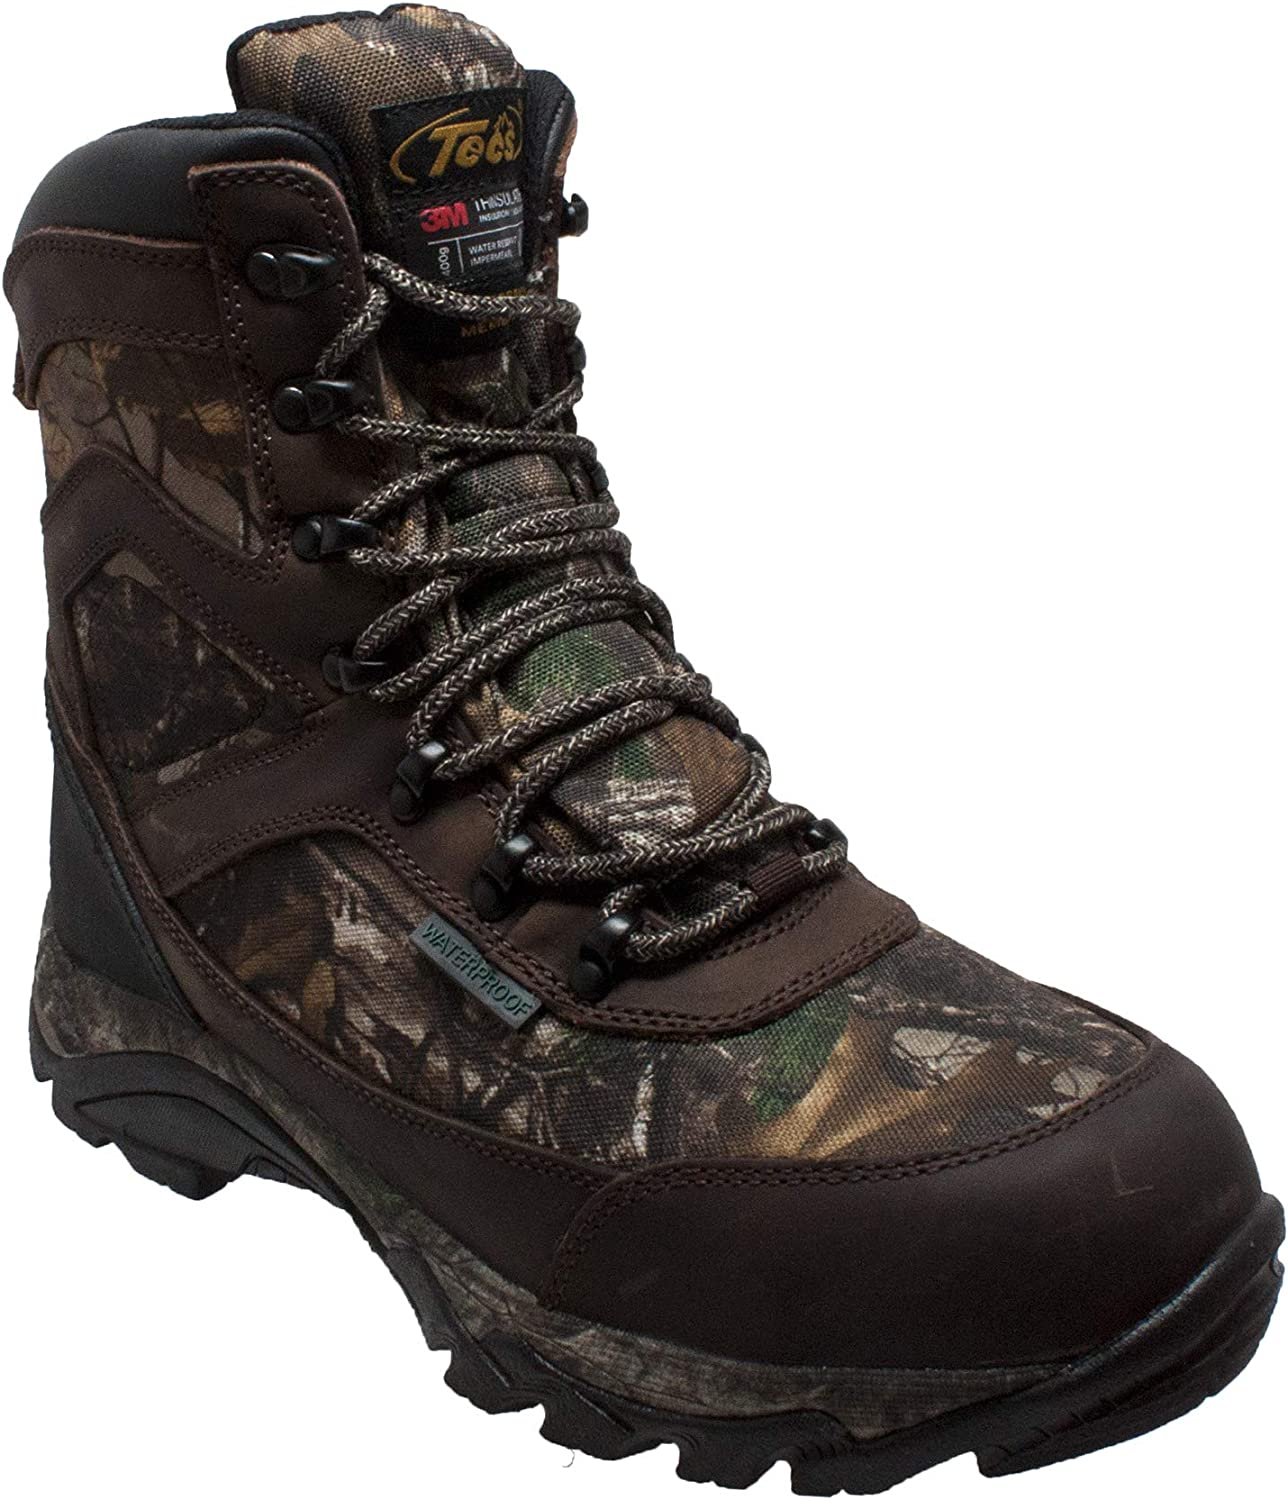 TECS Men's 9  Leather Boots  Waterproof for Hunting, Fishing, Hiking or Outdoors 400g